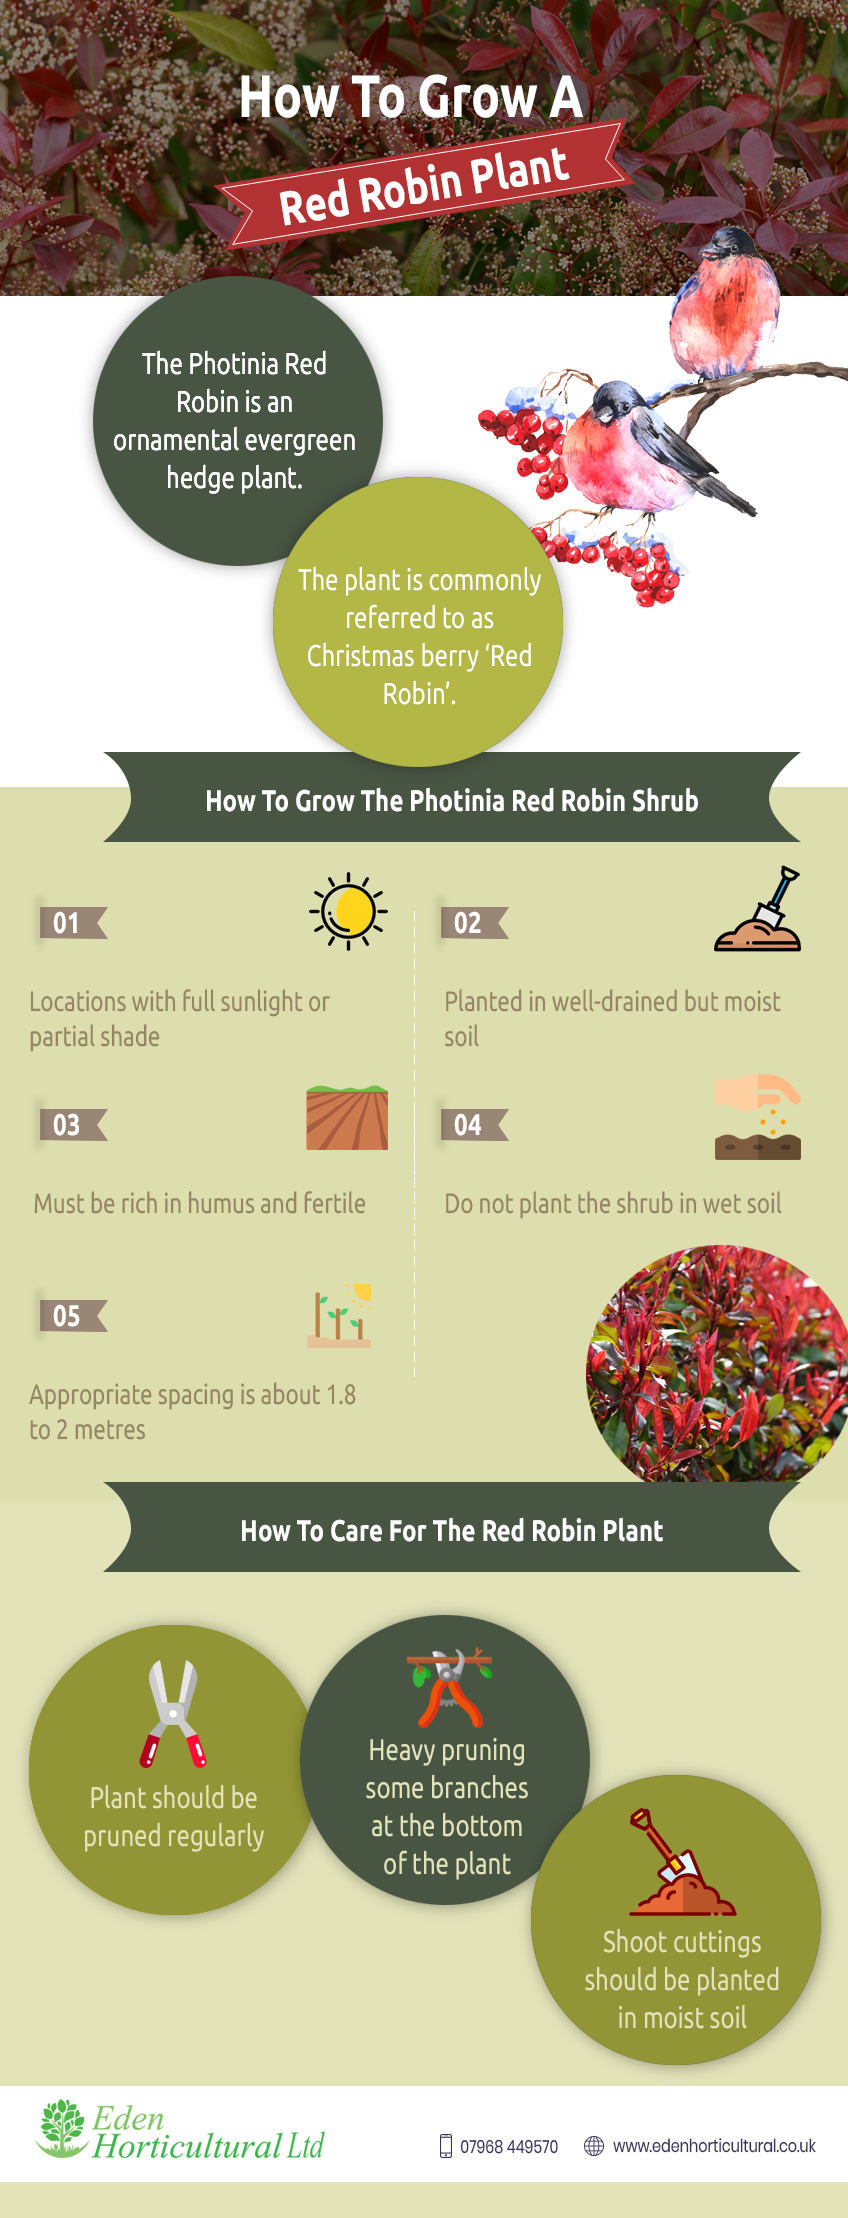 How-To-Grow-A-Red-Robin-Plant--info